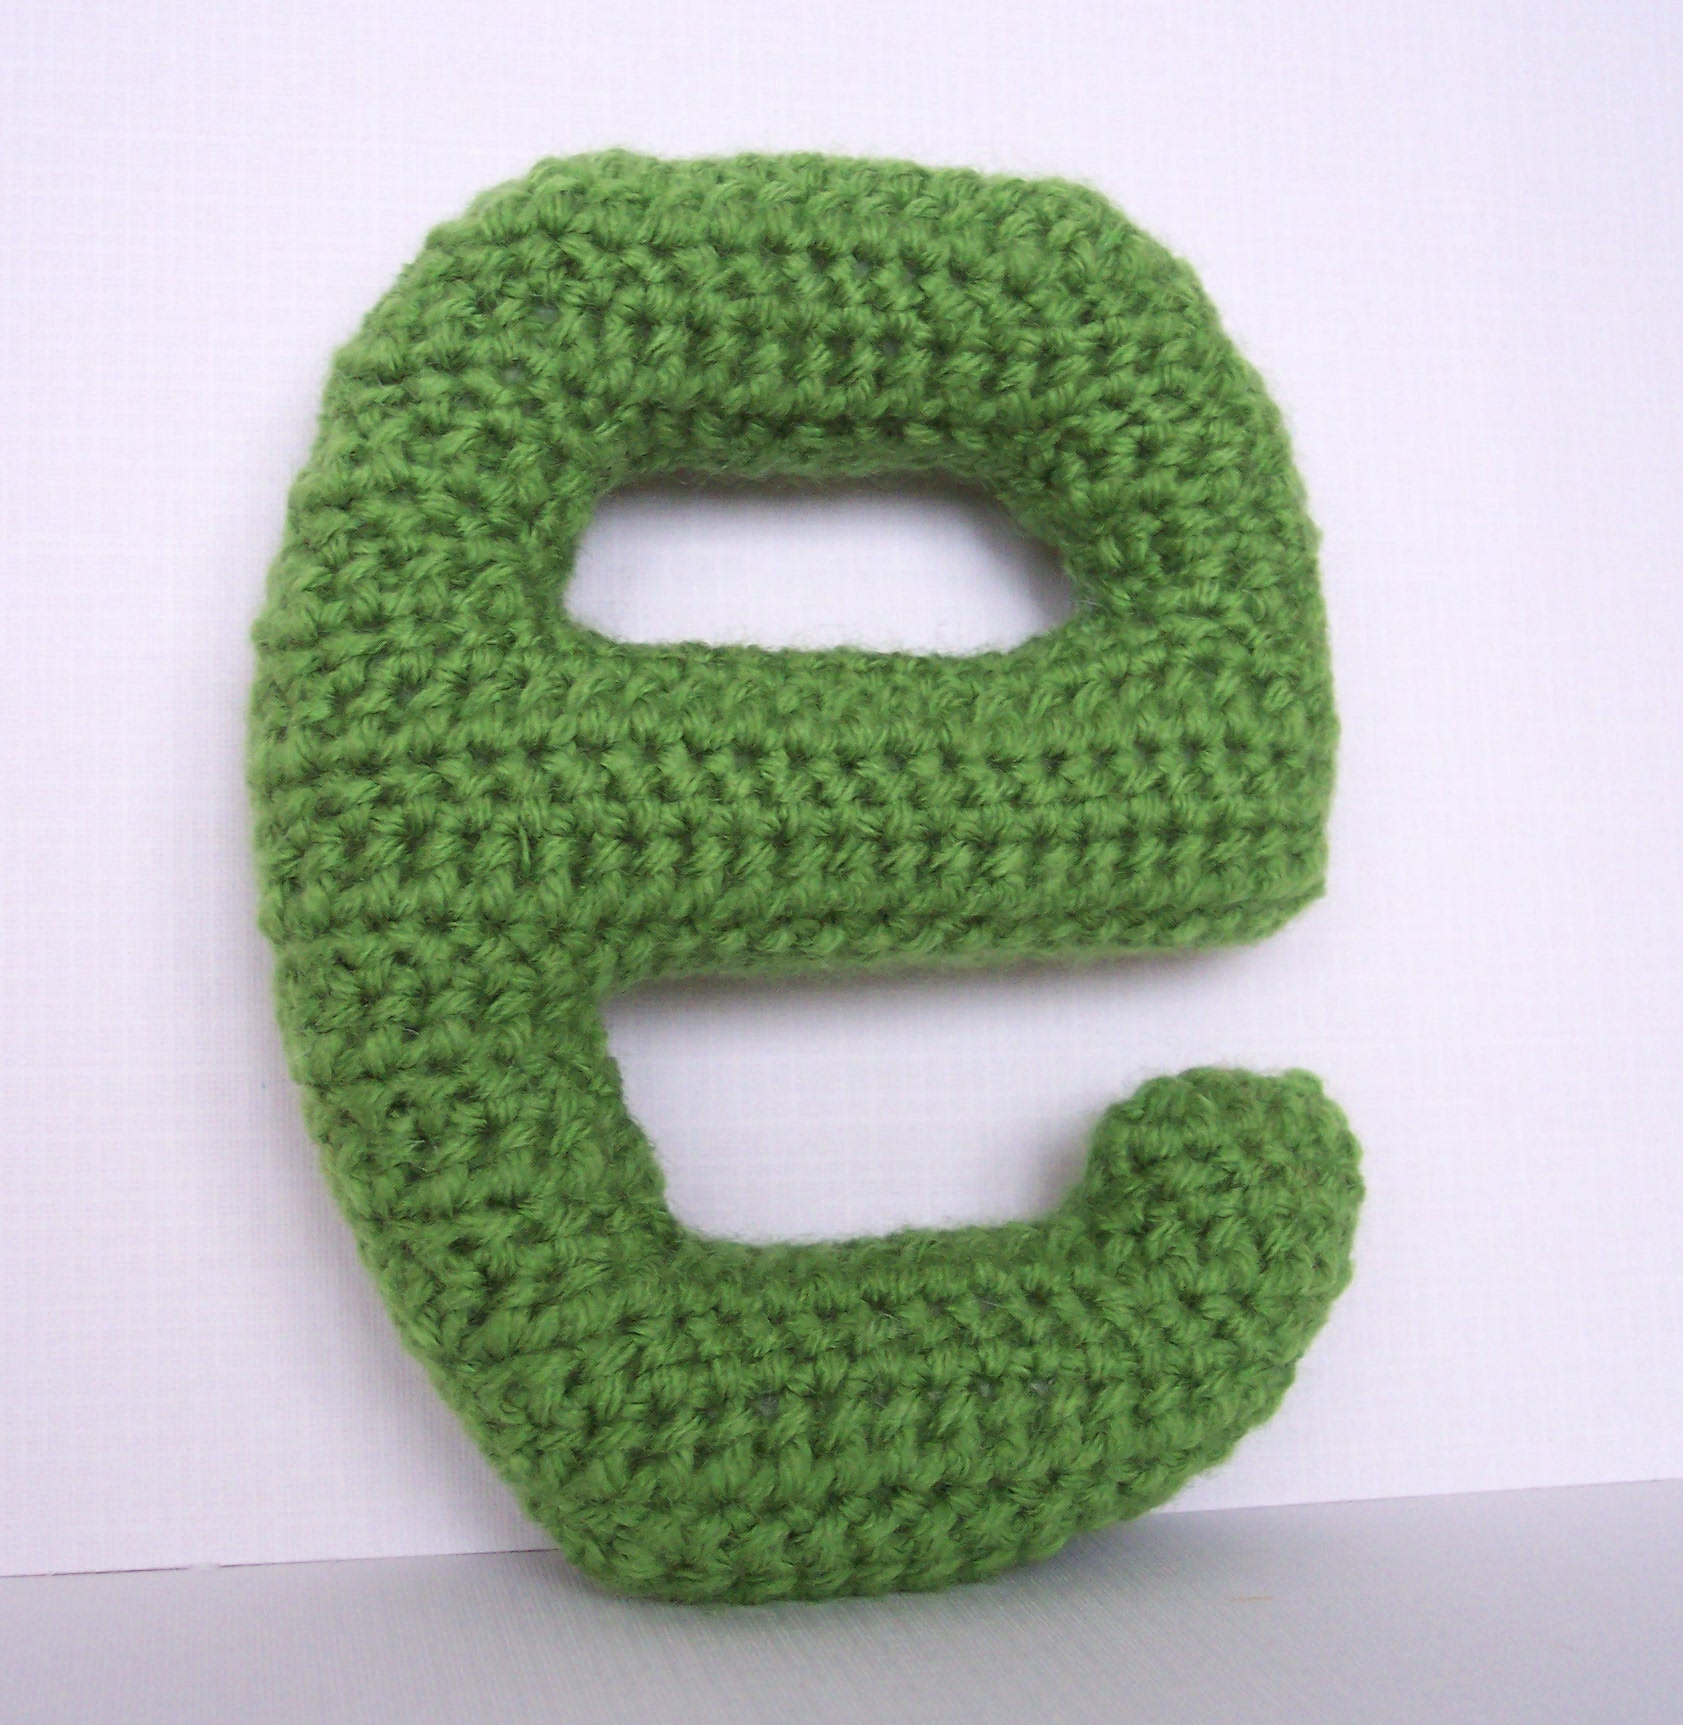 ALPHABET CROCHET PATTERN Crochet Patterns